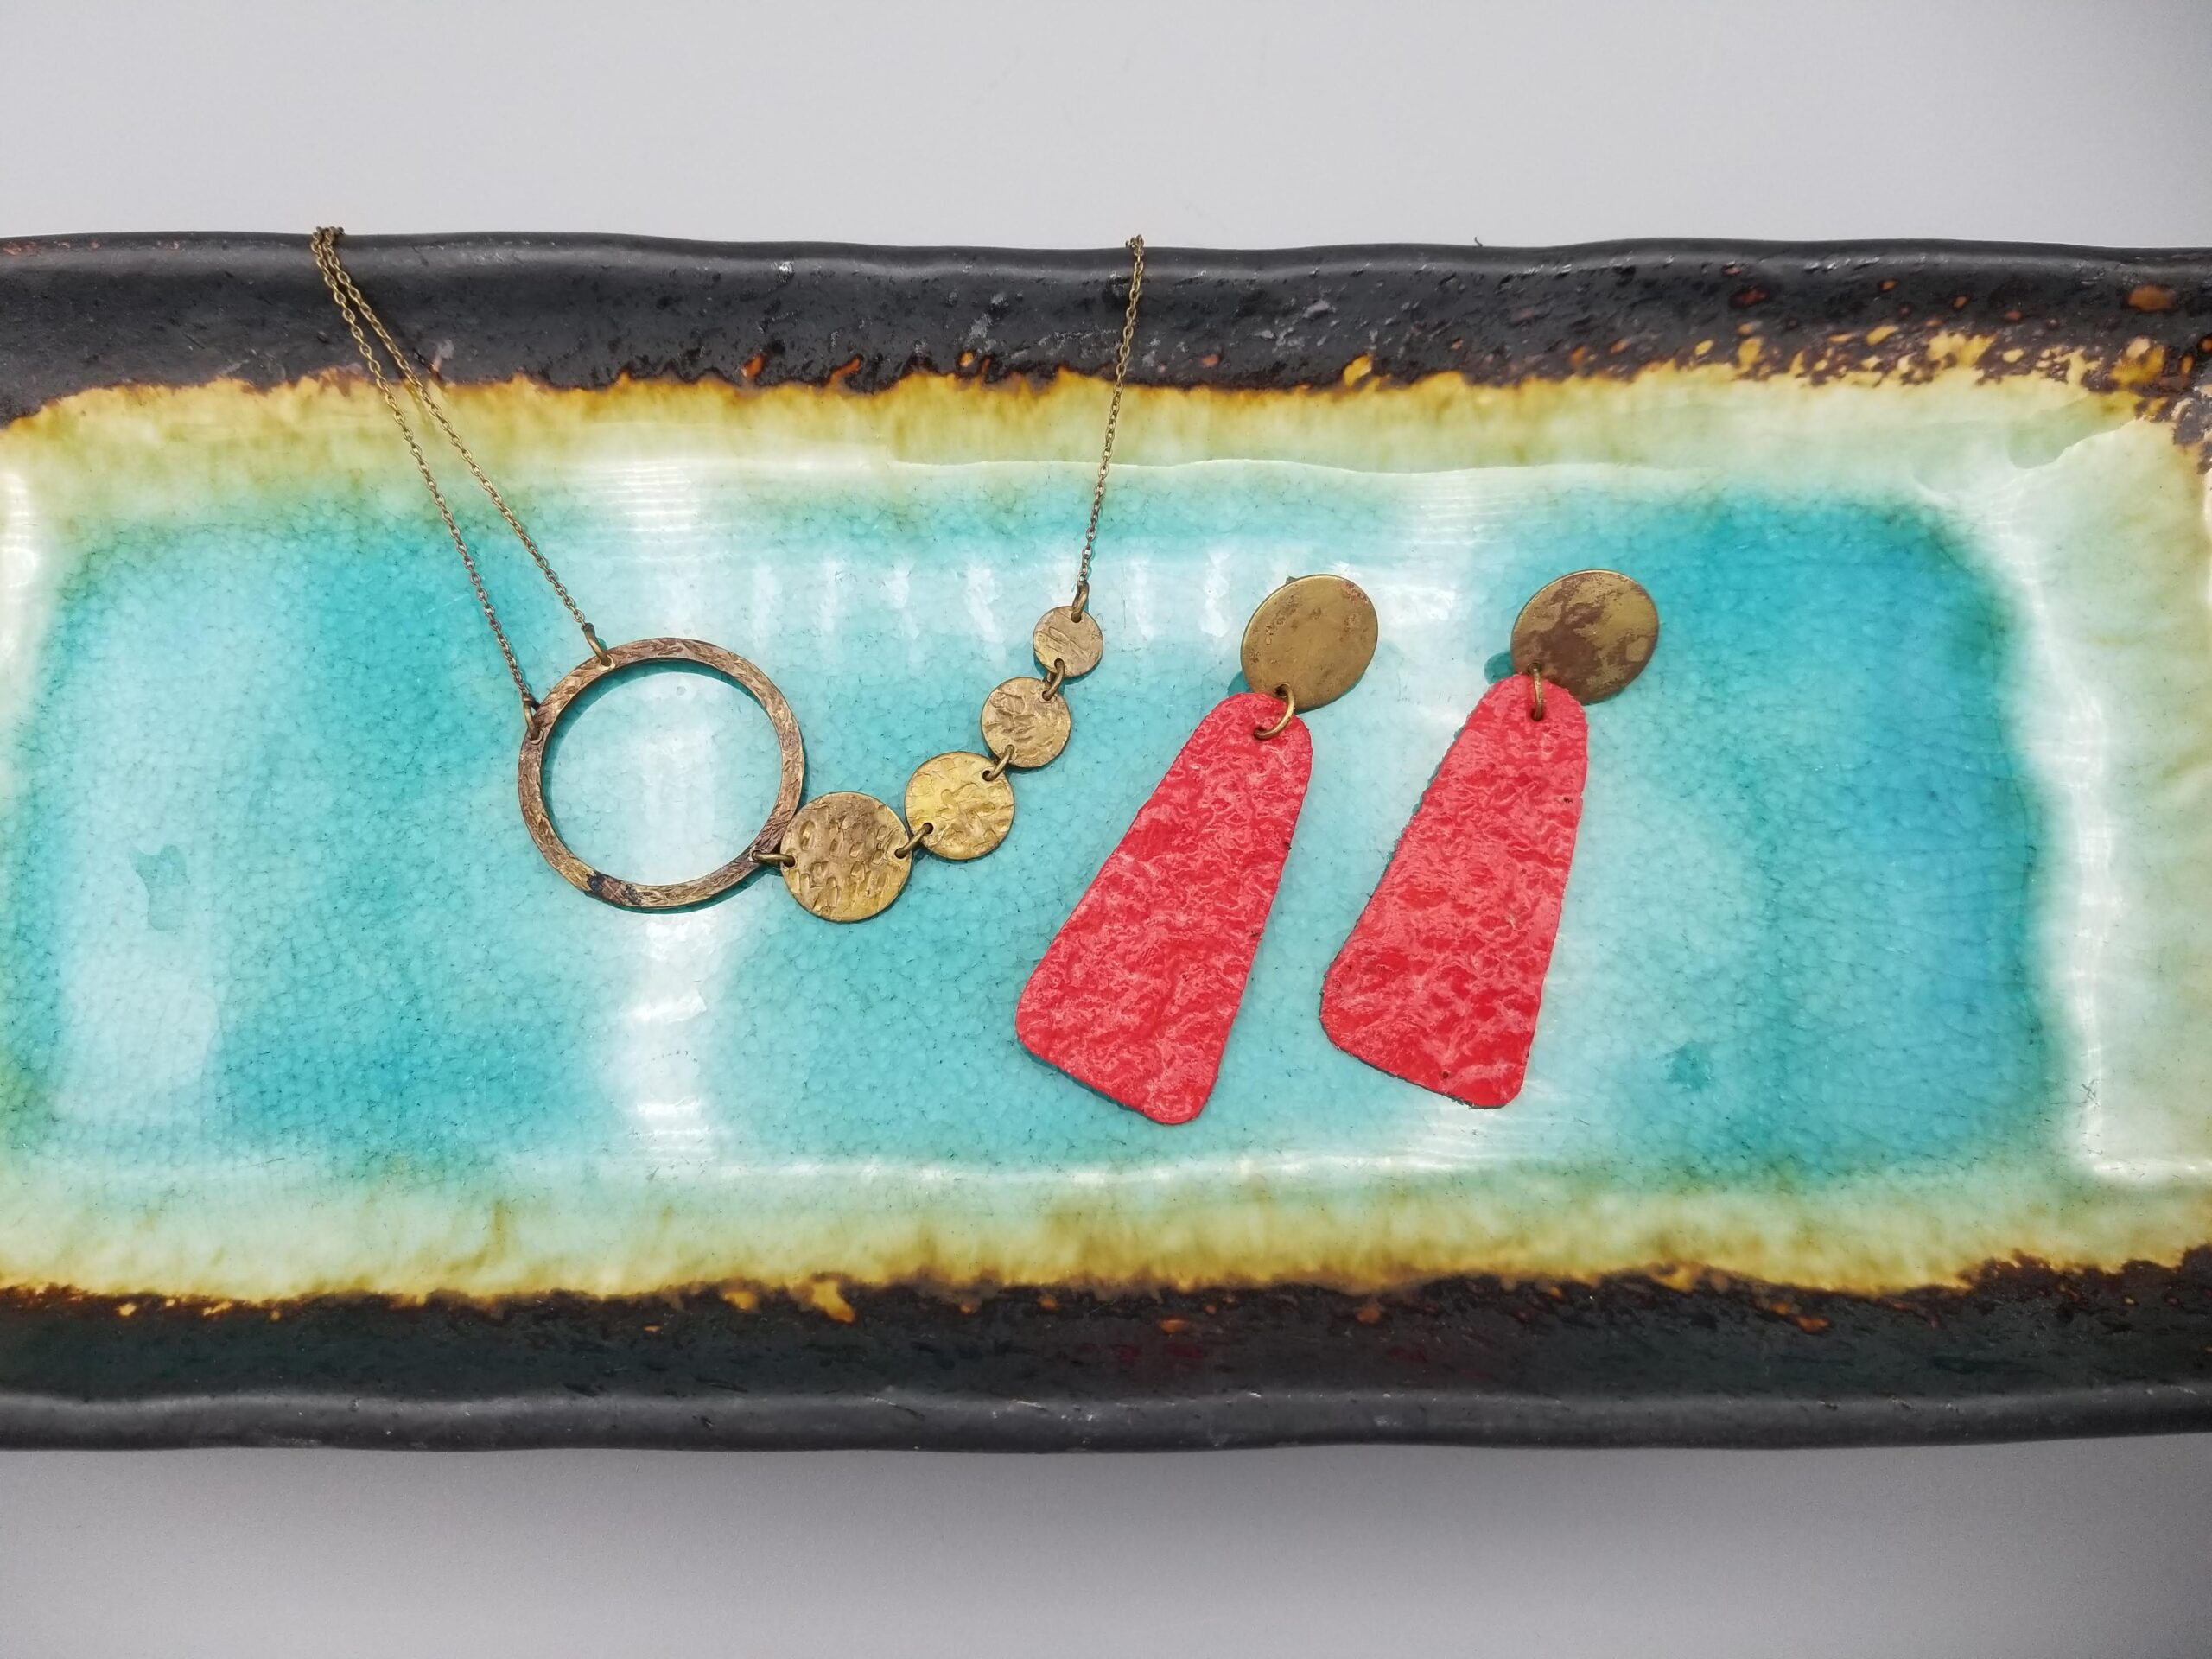 stylish combo of hand-crafted raw brass necklace and bright red handmade paper earrings